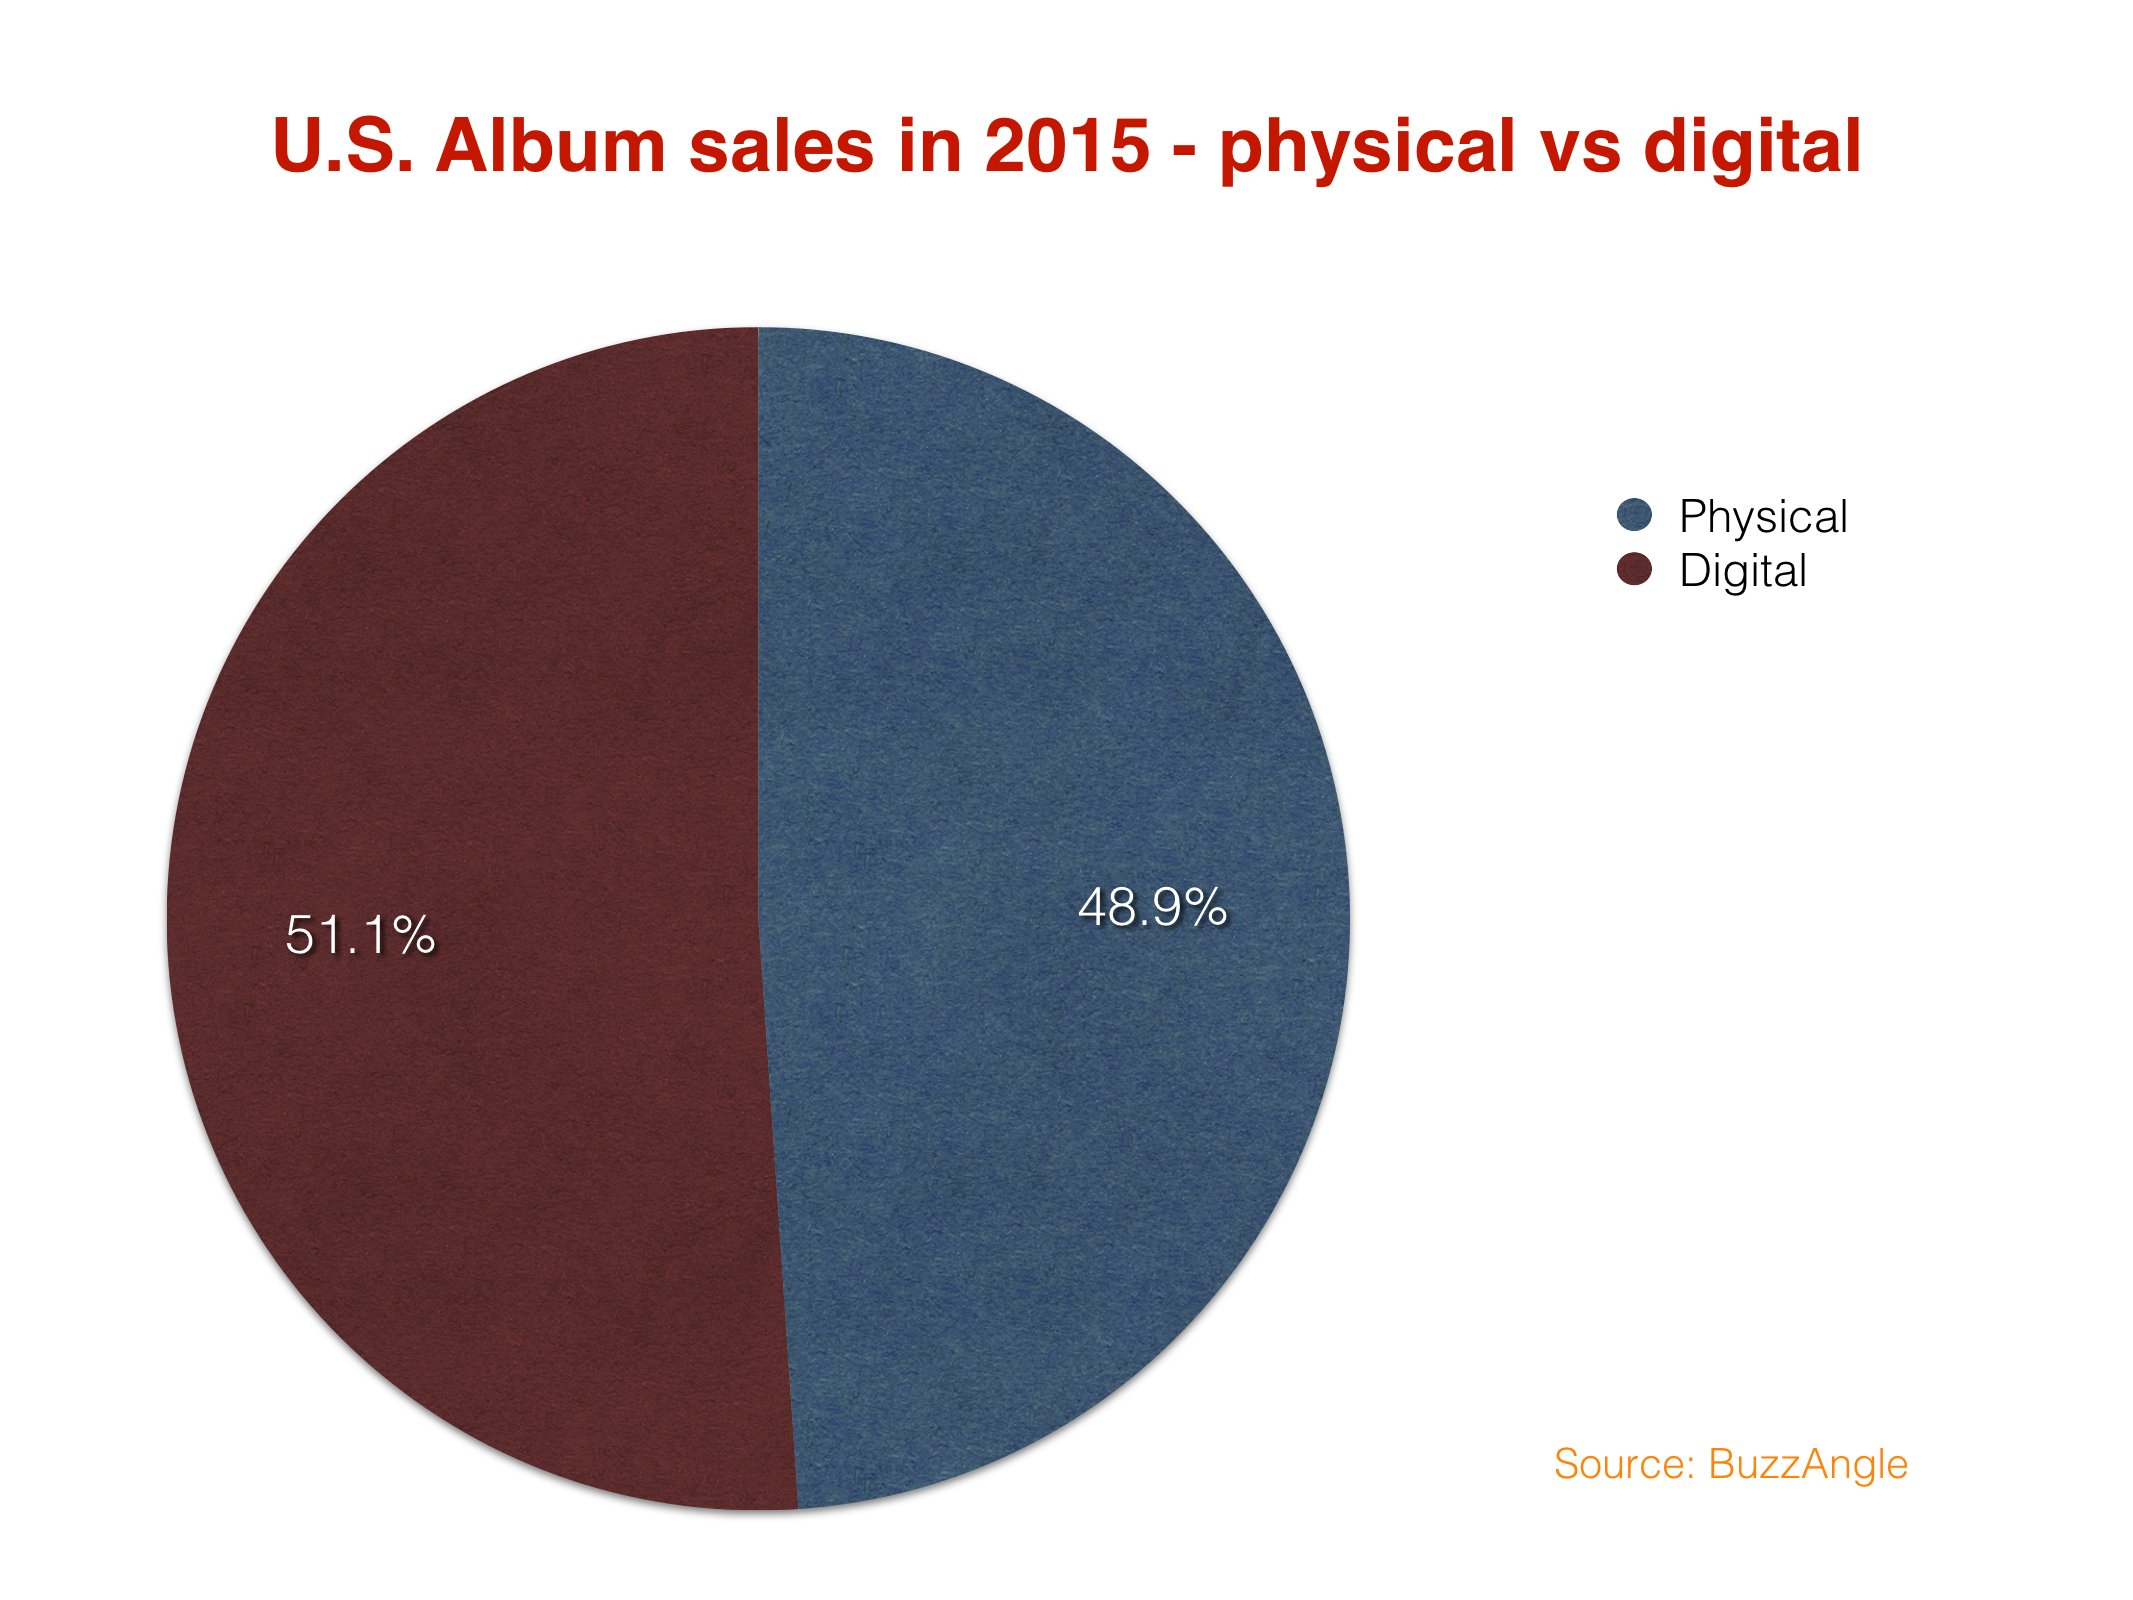 USphysicalvsdigital2015